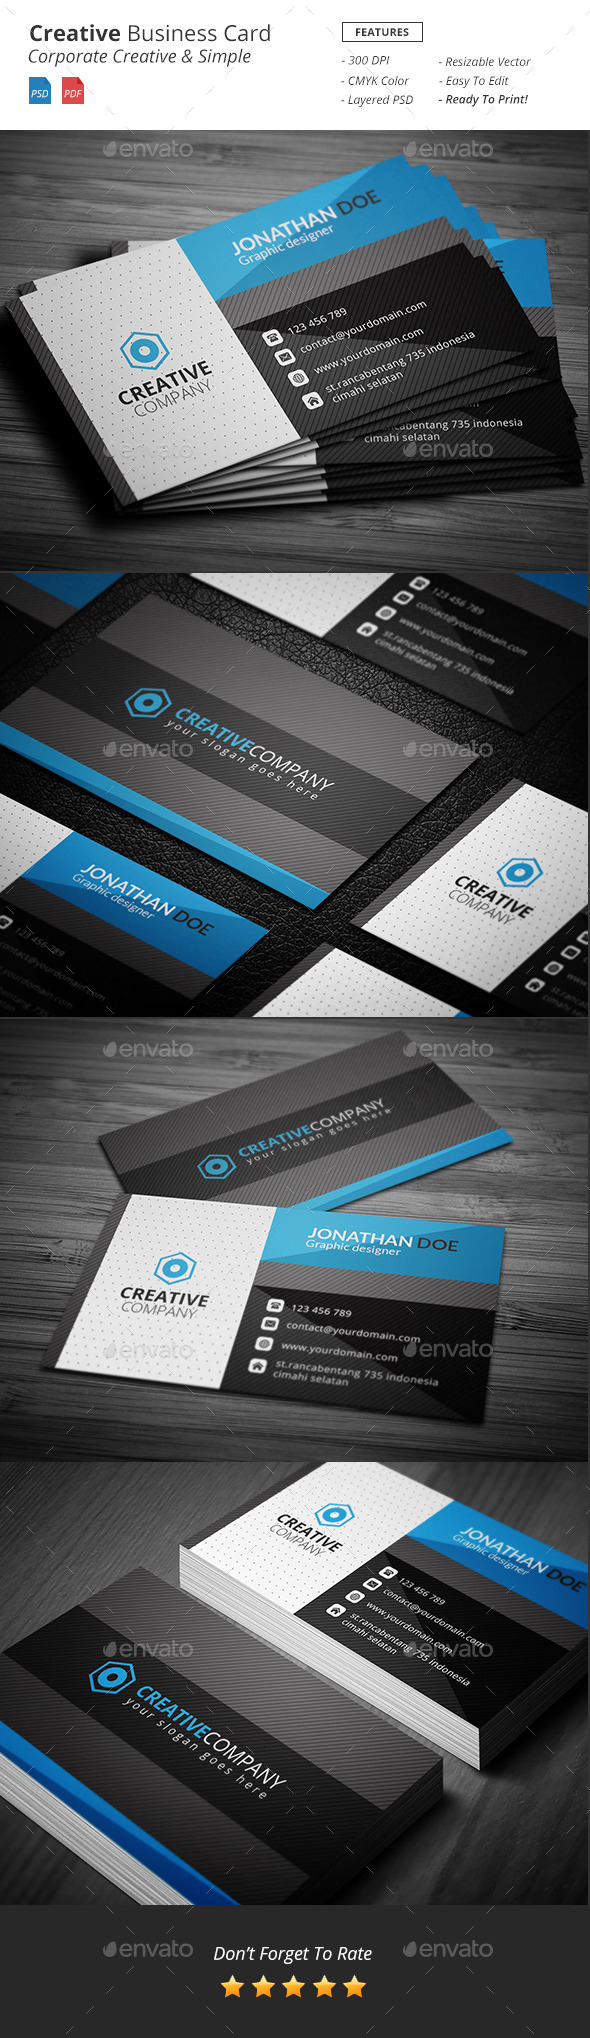 GraphicRiver Oplo Creative Business Card 11208499